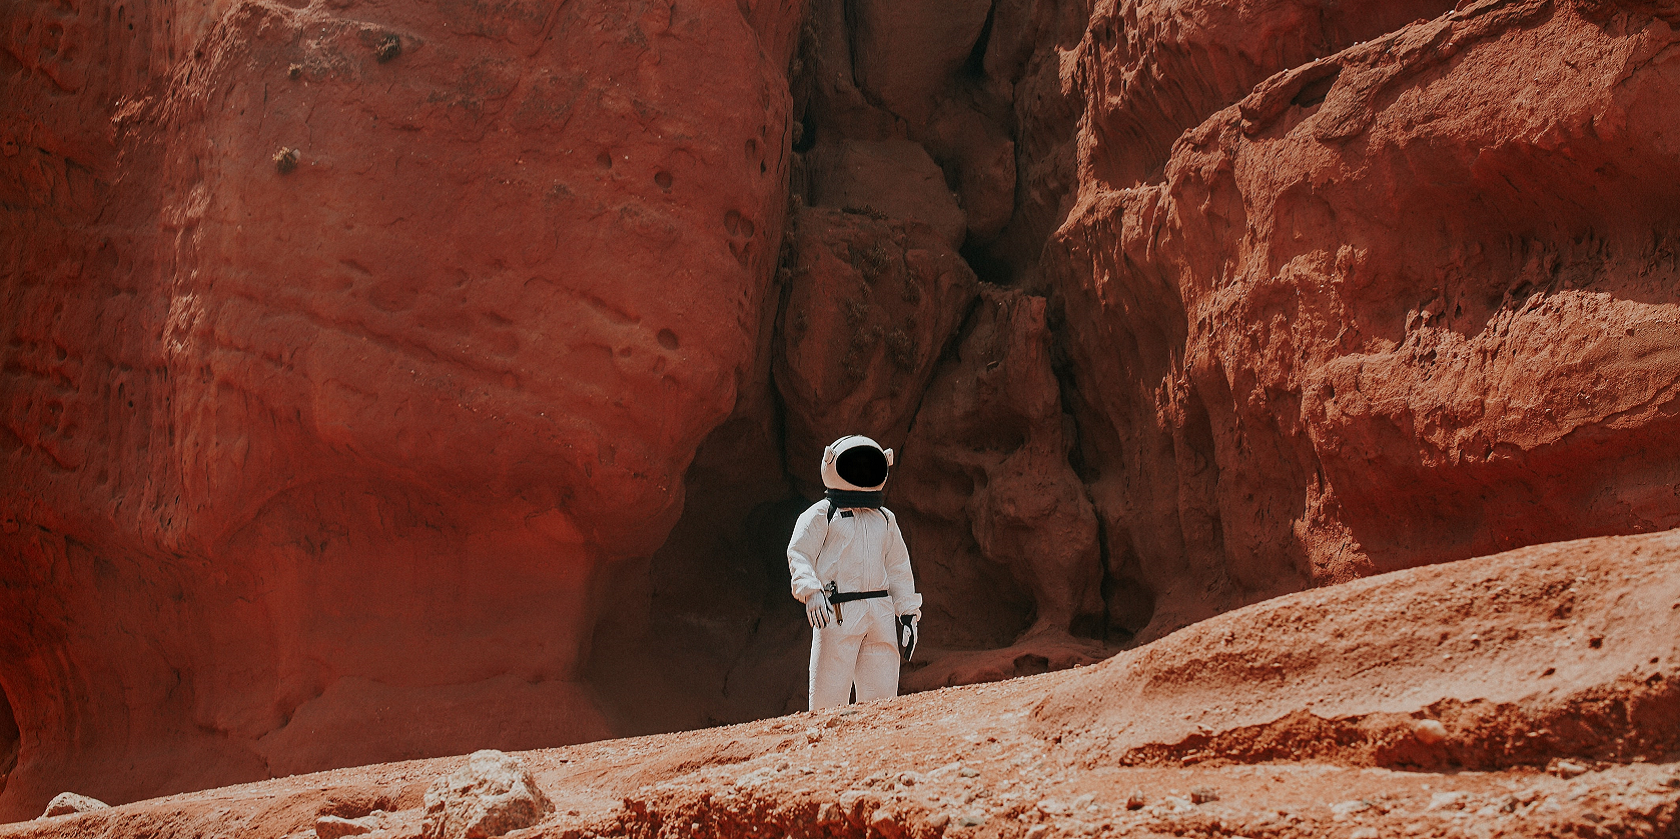 Can Humans Live on Mars? The Technology That Can Make It Happen